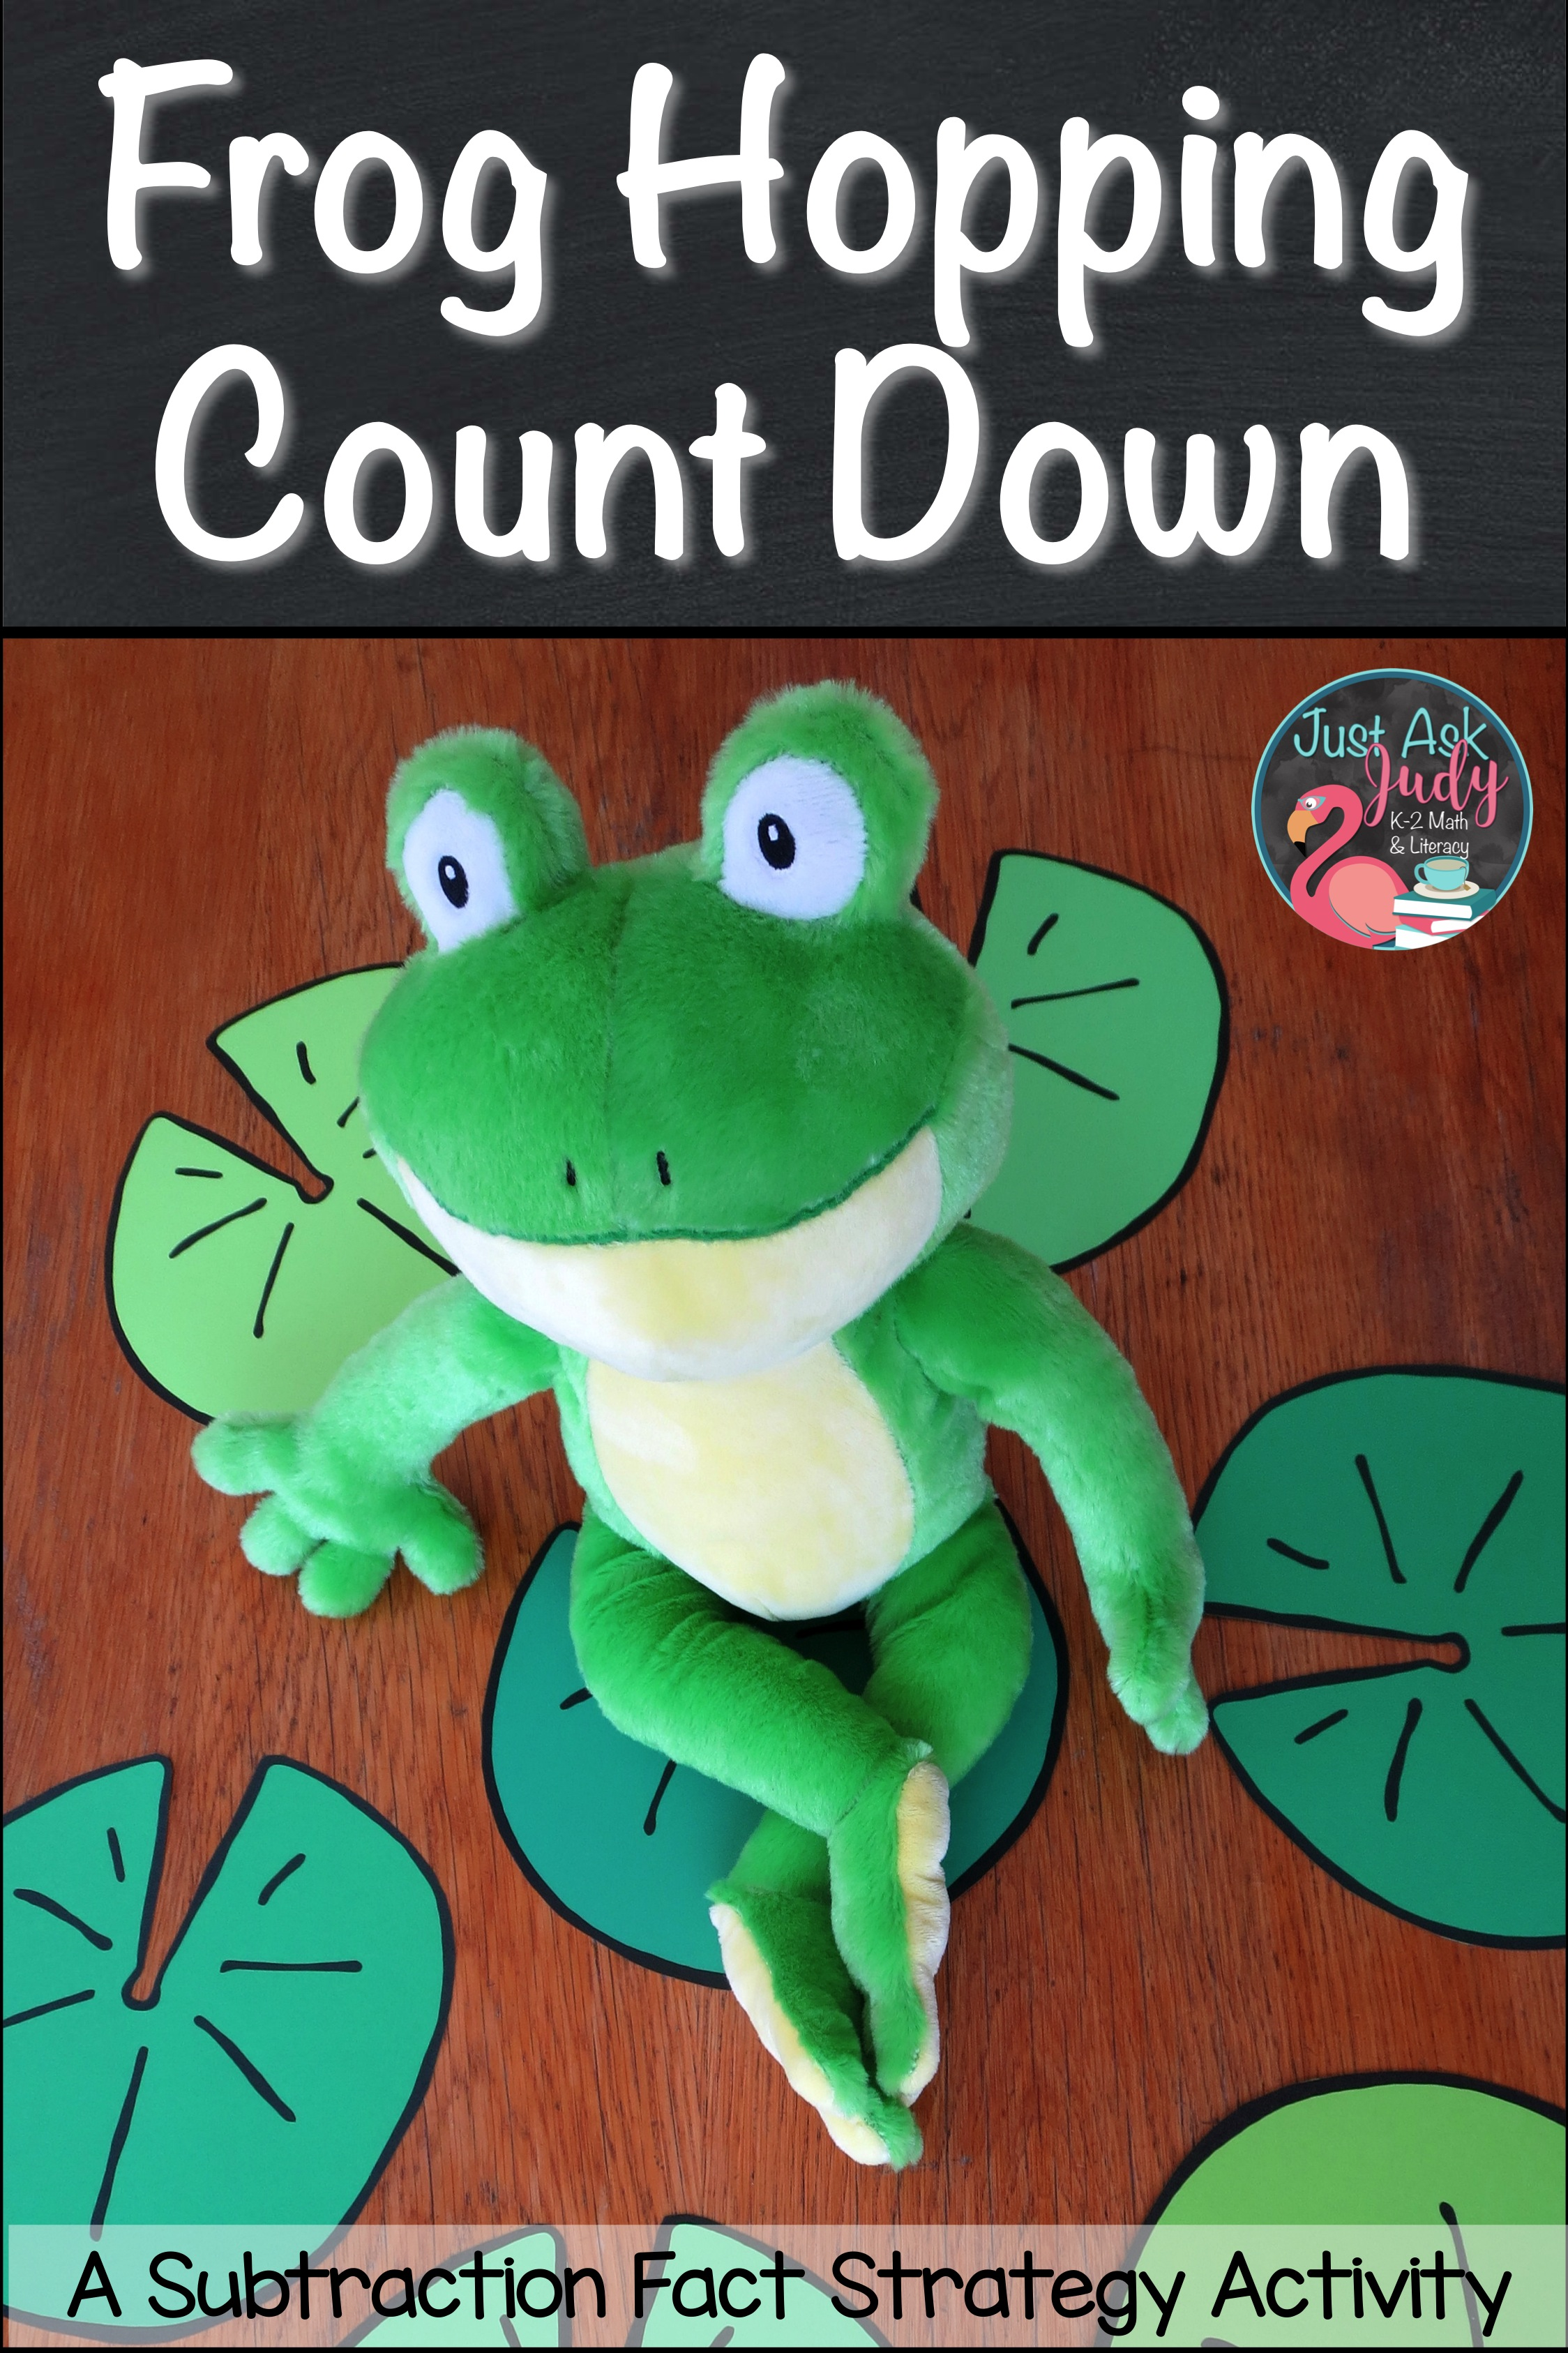 1 Winning Way to Introduce the Count Down Strategy - Just Ask Judy